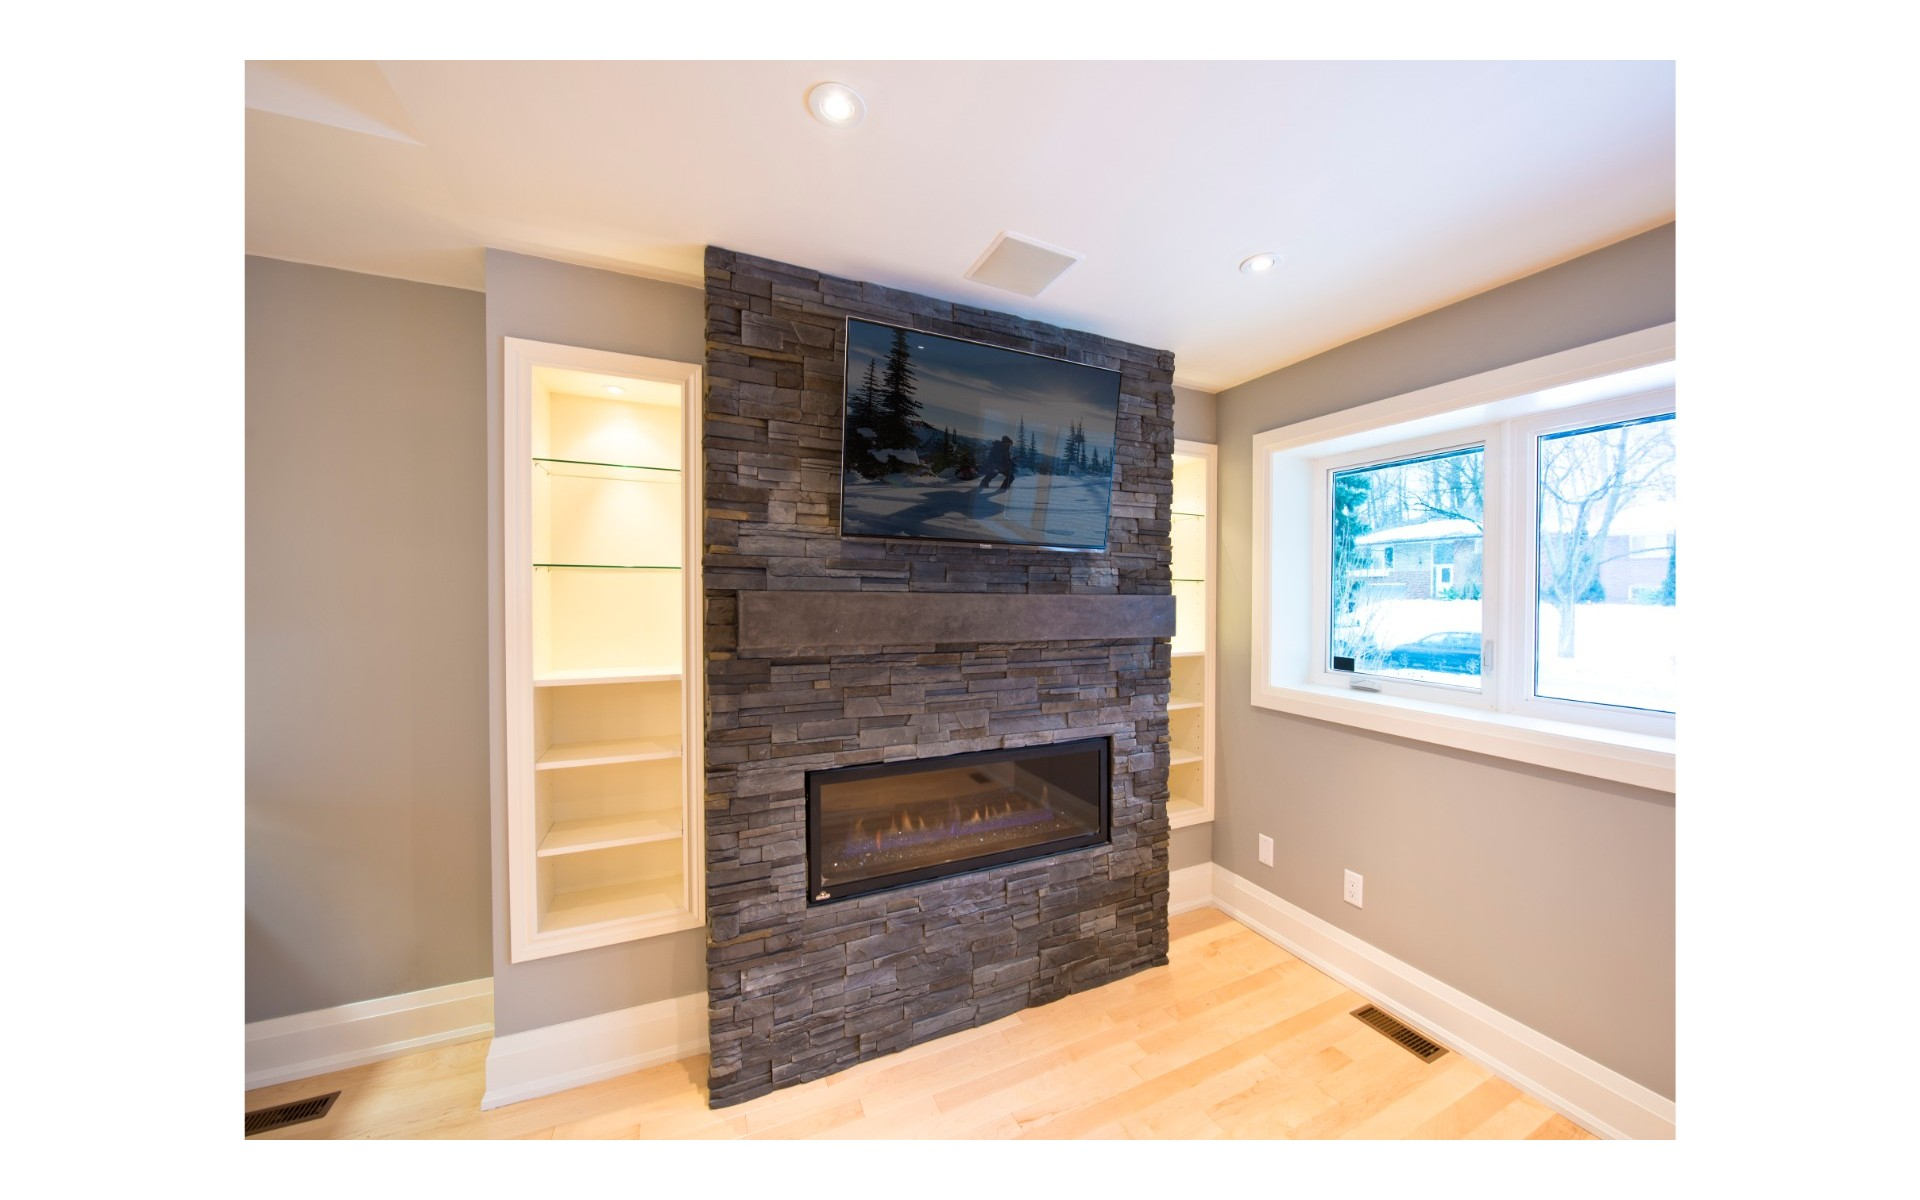 TV mounted above electric fireplace with dark accents